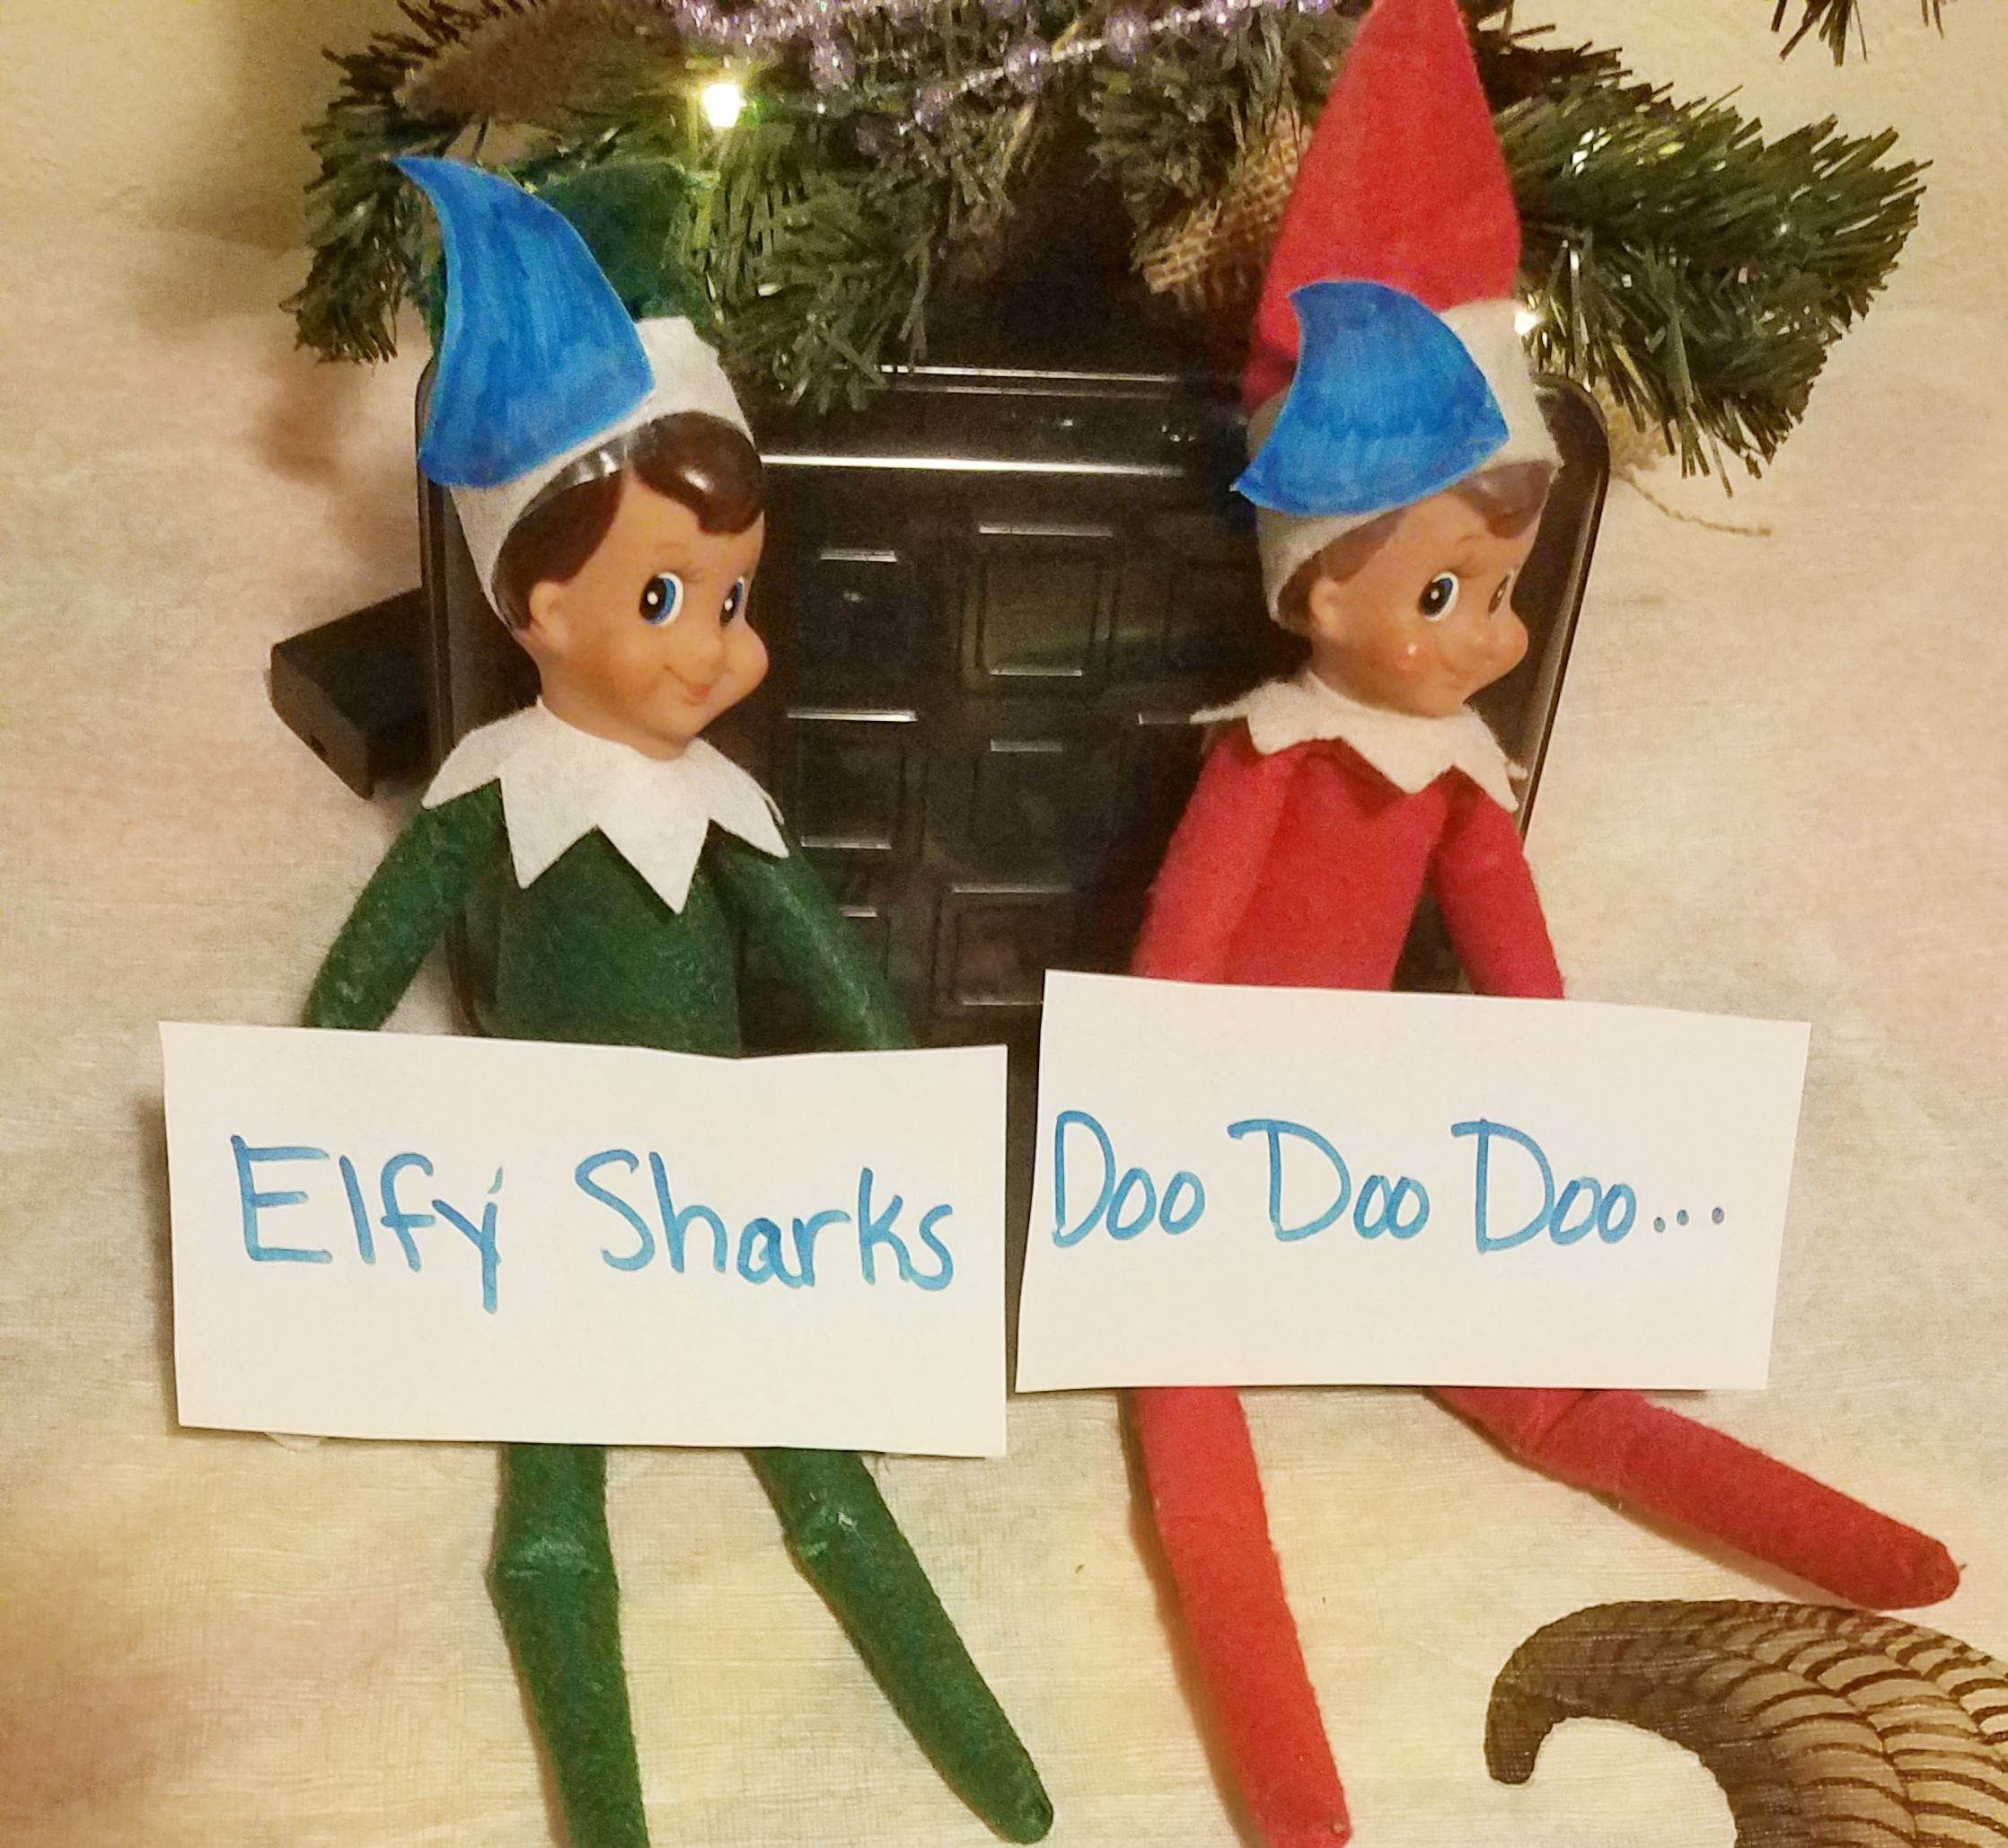 Elf On The Shelf For The Little Ones Who Love Baby Shark Elfy